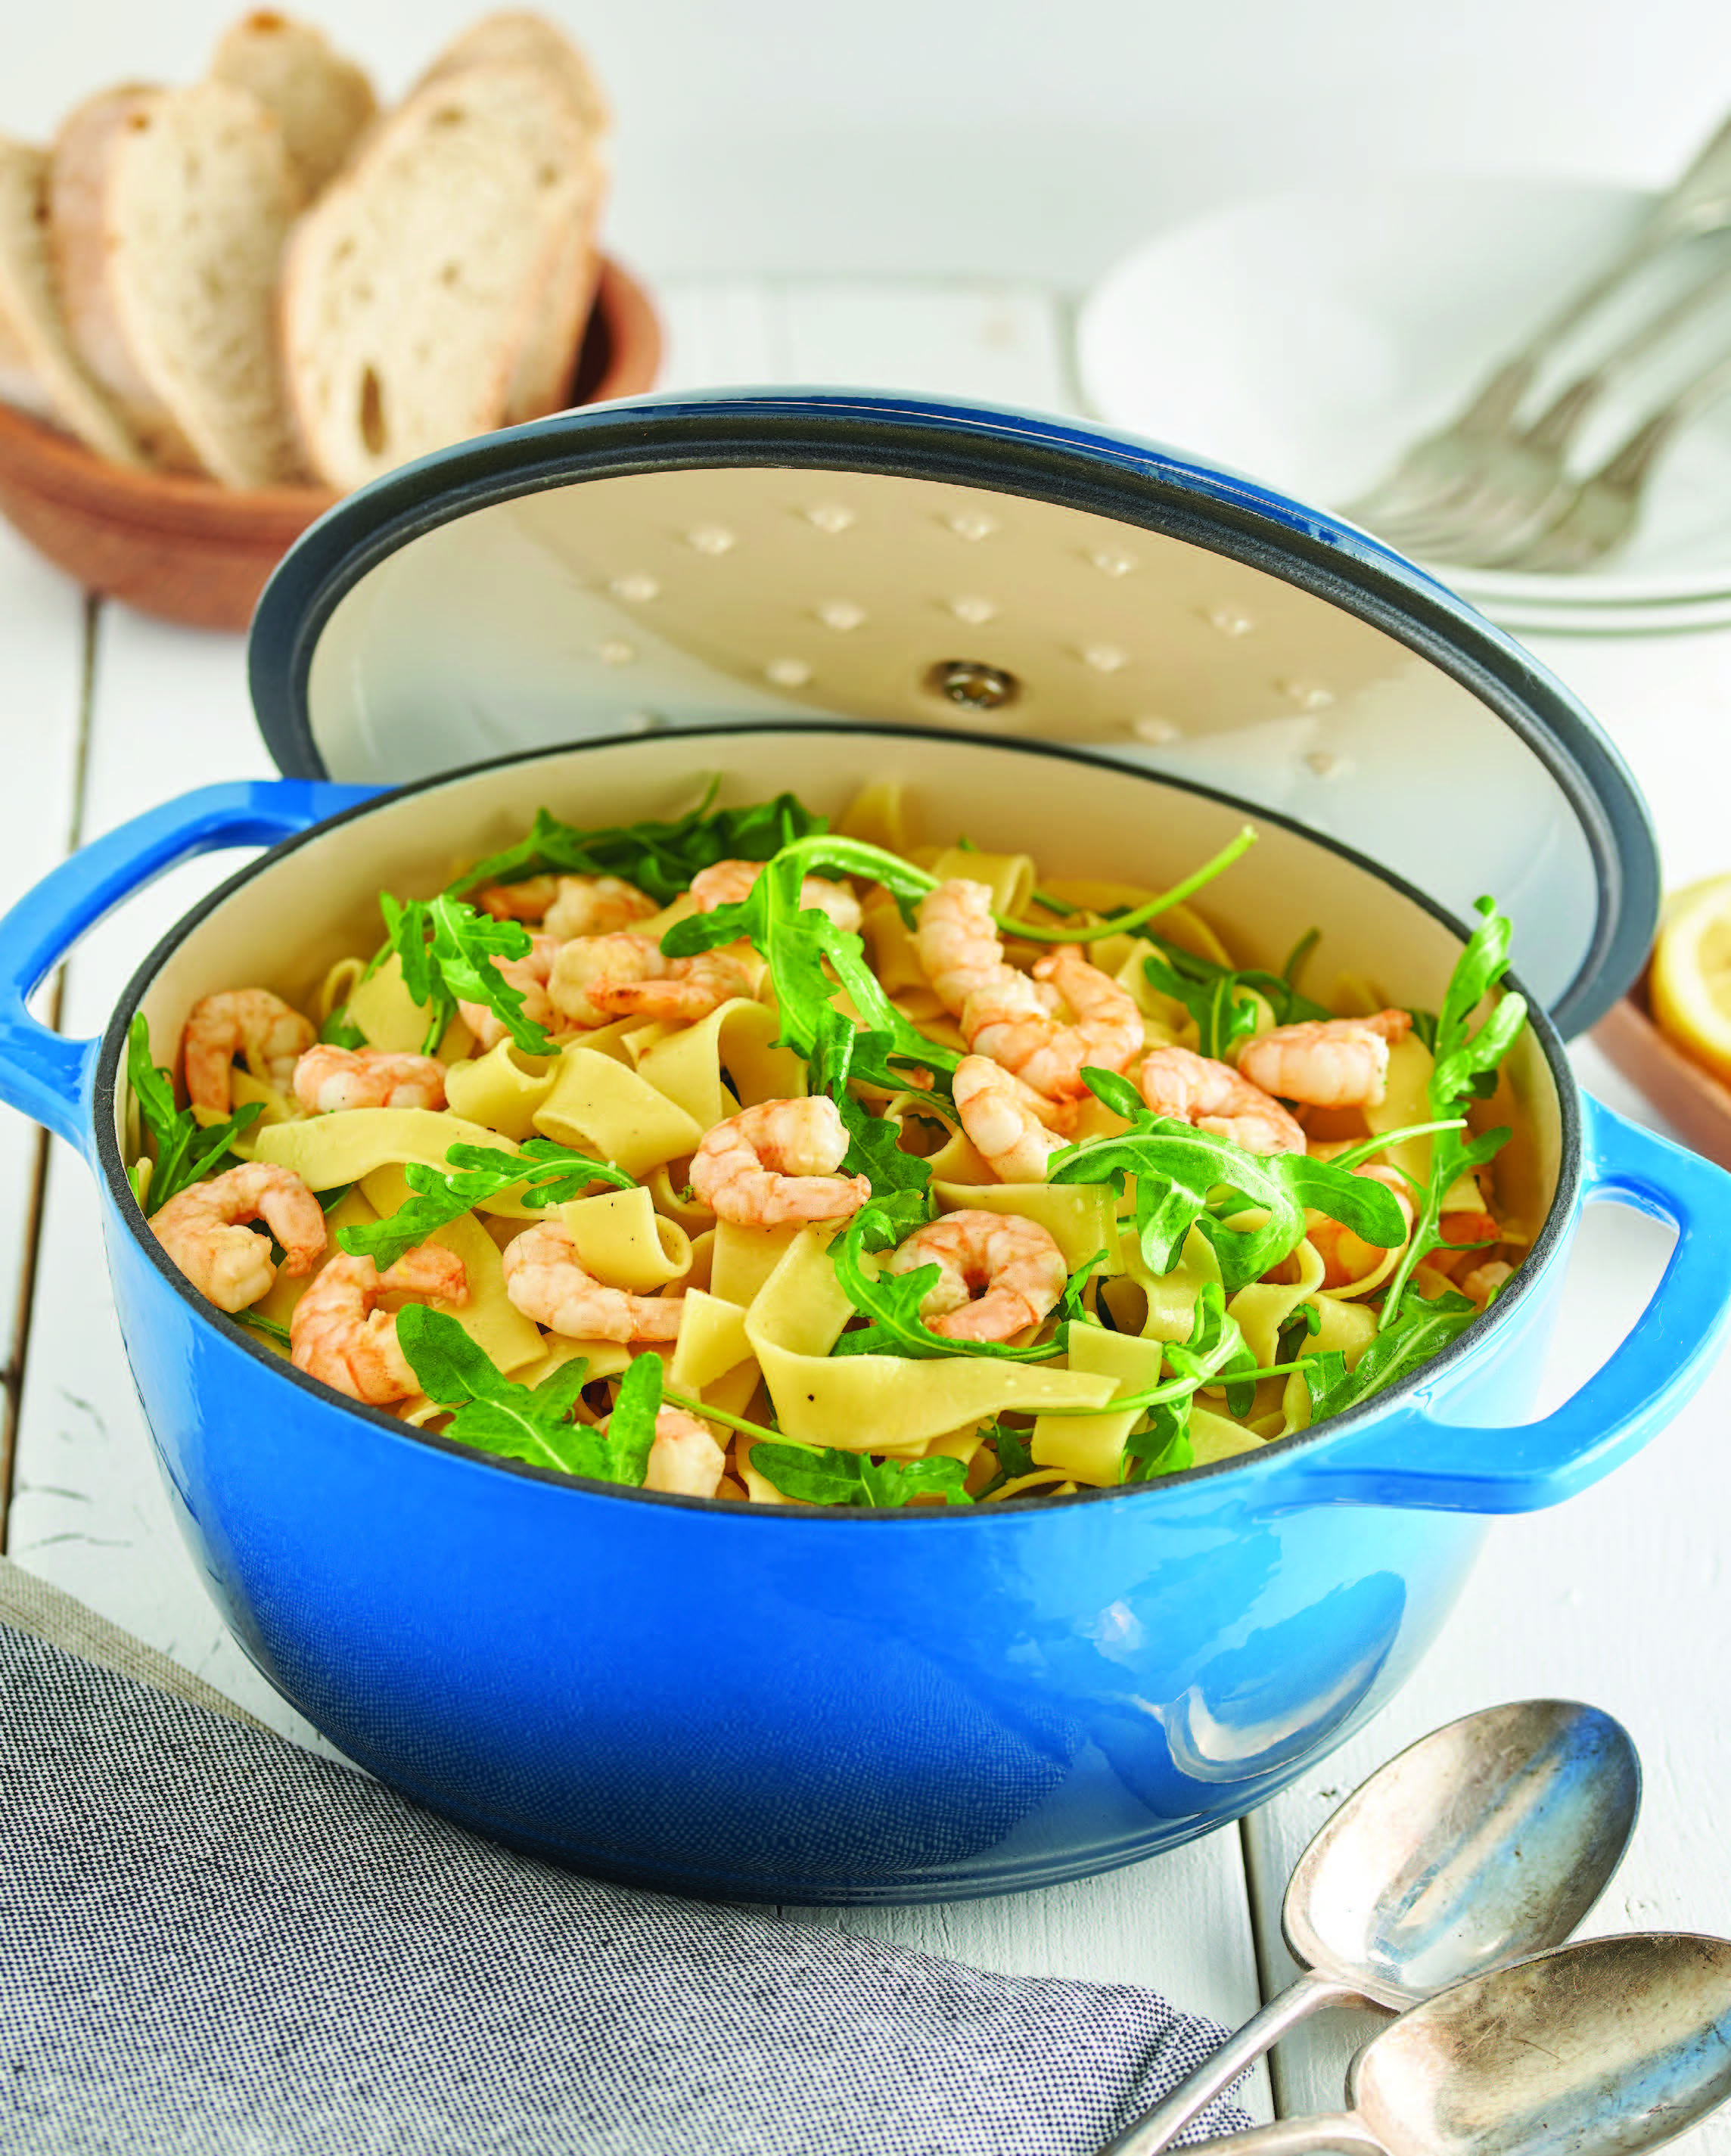 Lemon Garlic Shrimp One-Pot Pasta with Arugula